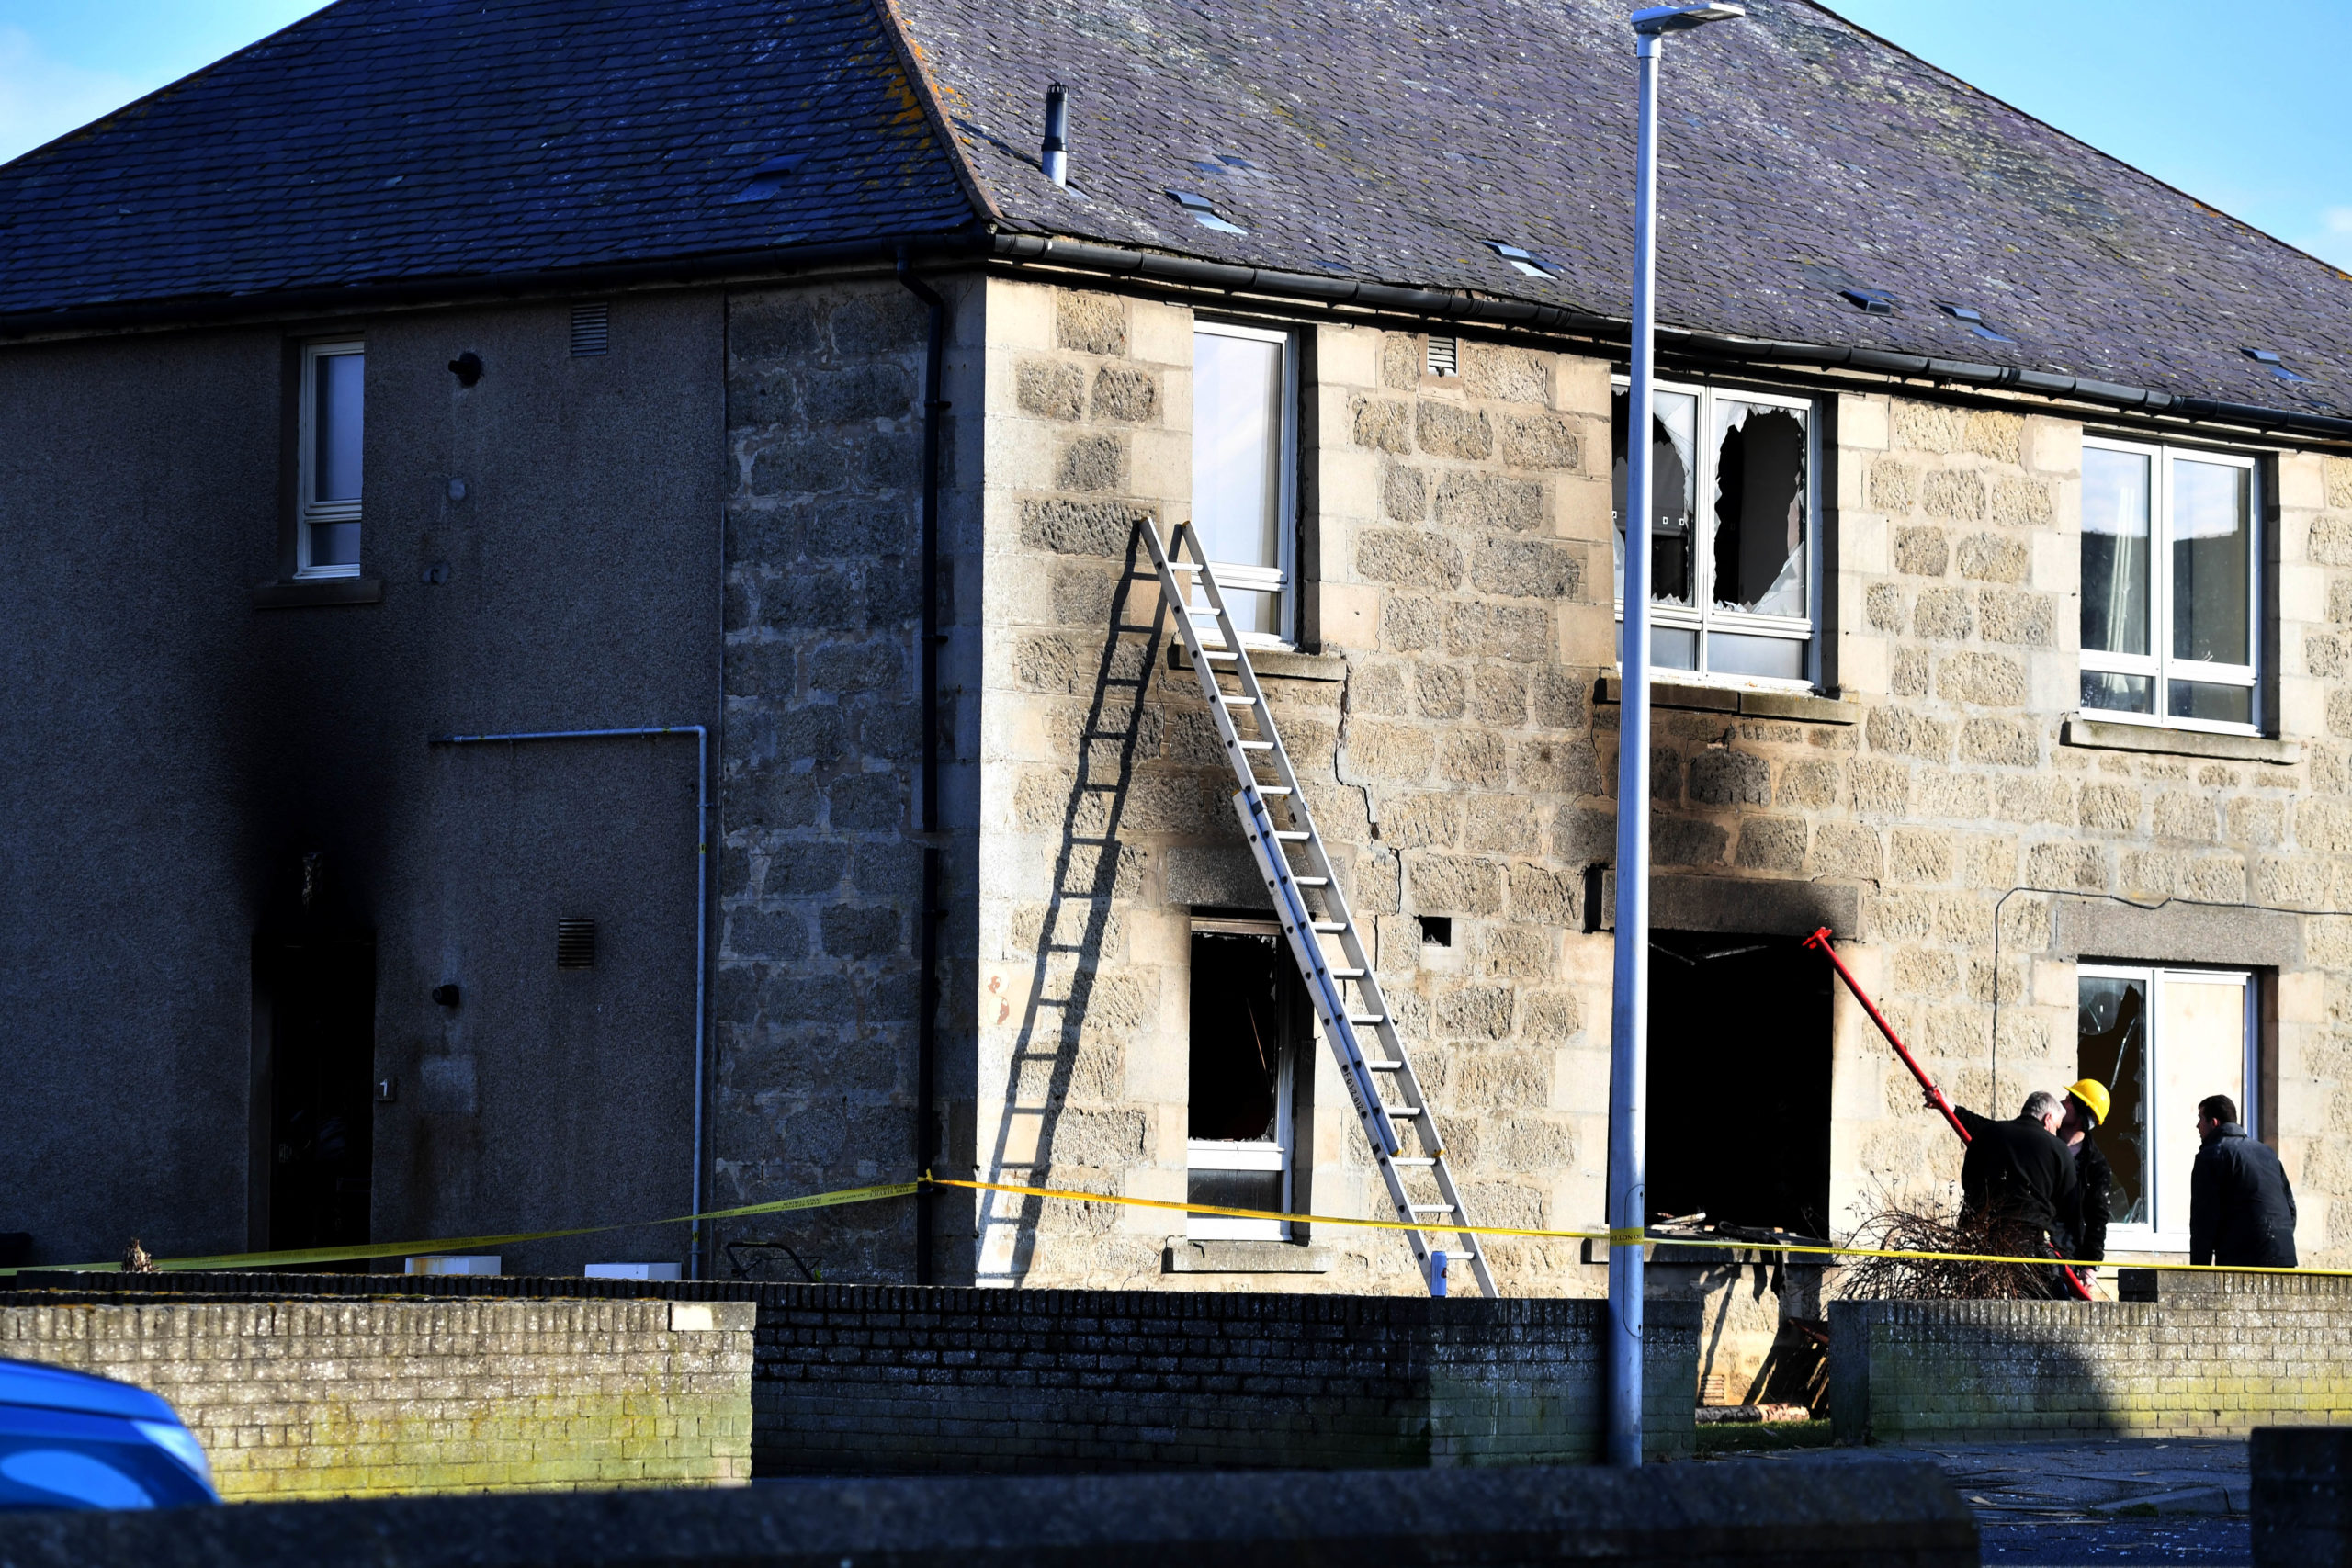 Aftermath of the explosion in Fraserburgh.